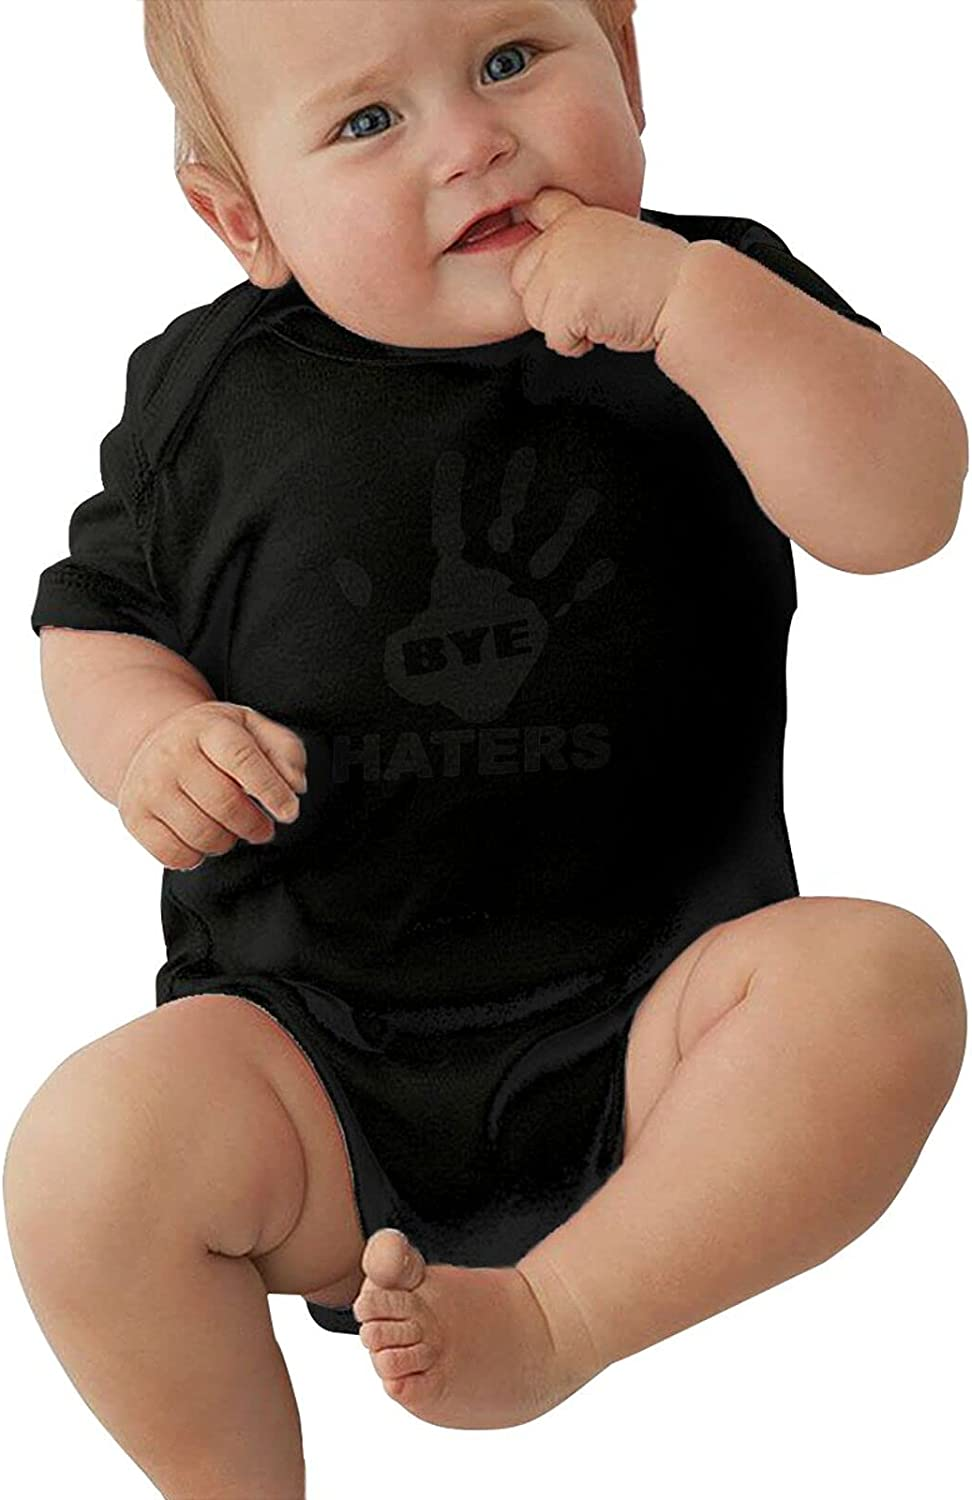 Bye Sale price Haters Unisex Baby Stretchy Cool Cr Sleeve Bargain sale Short Tights